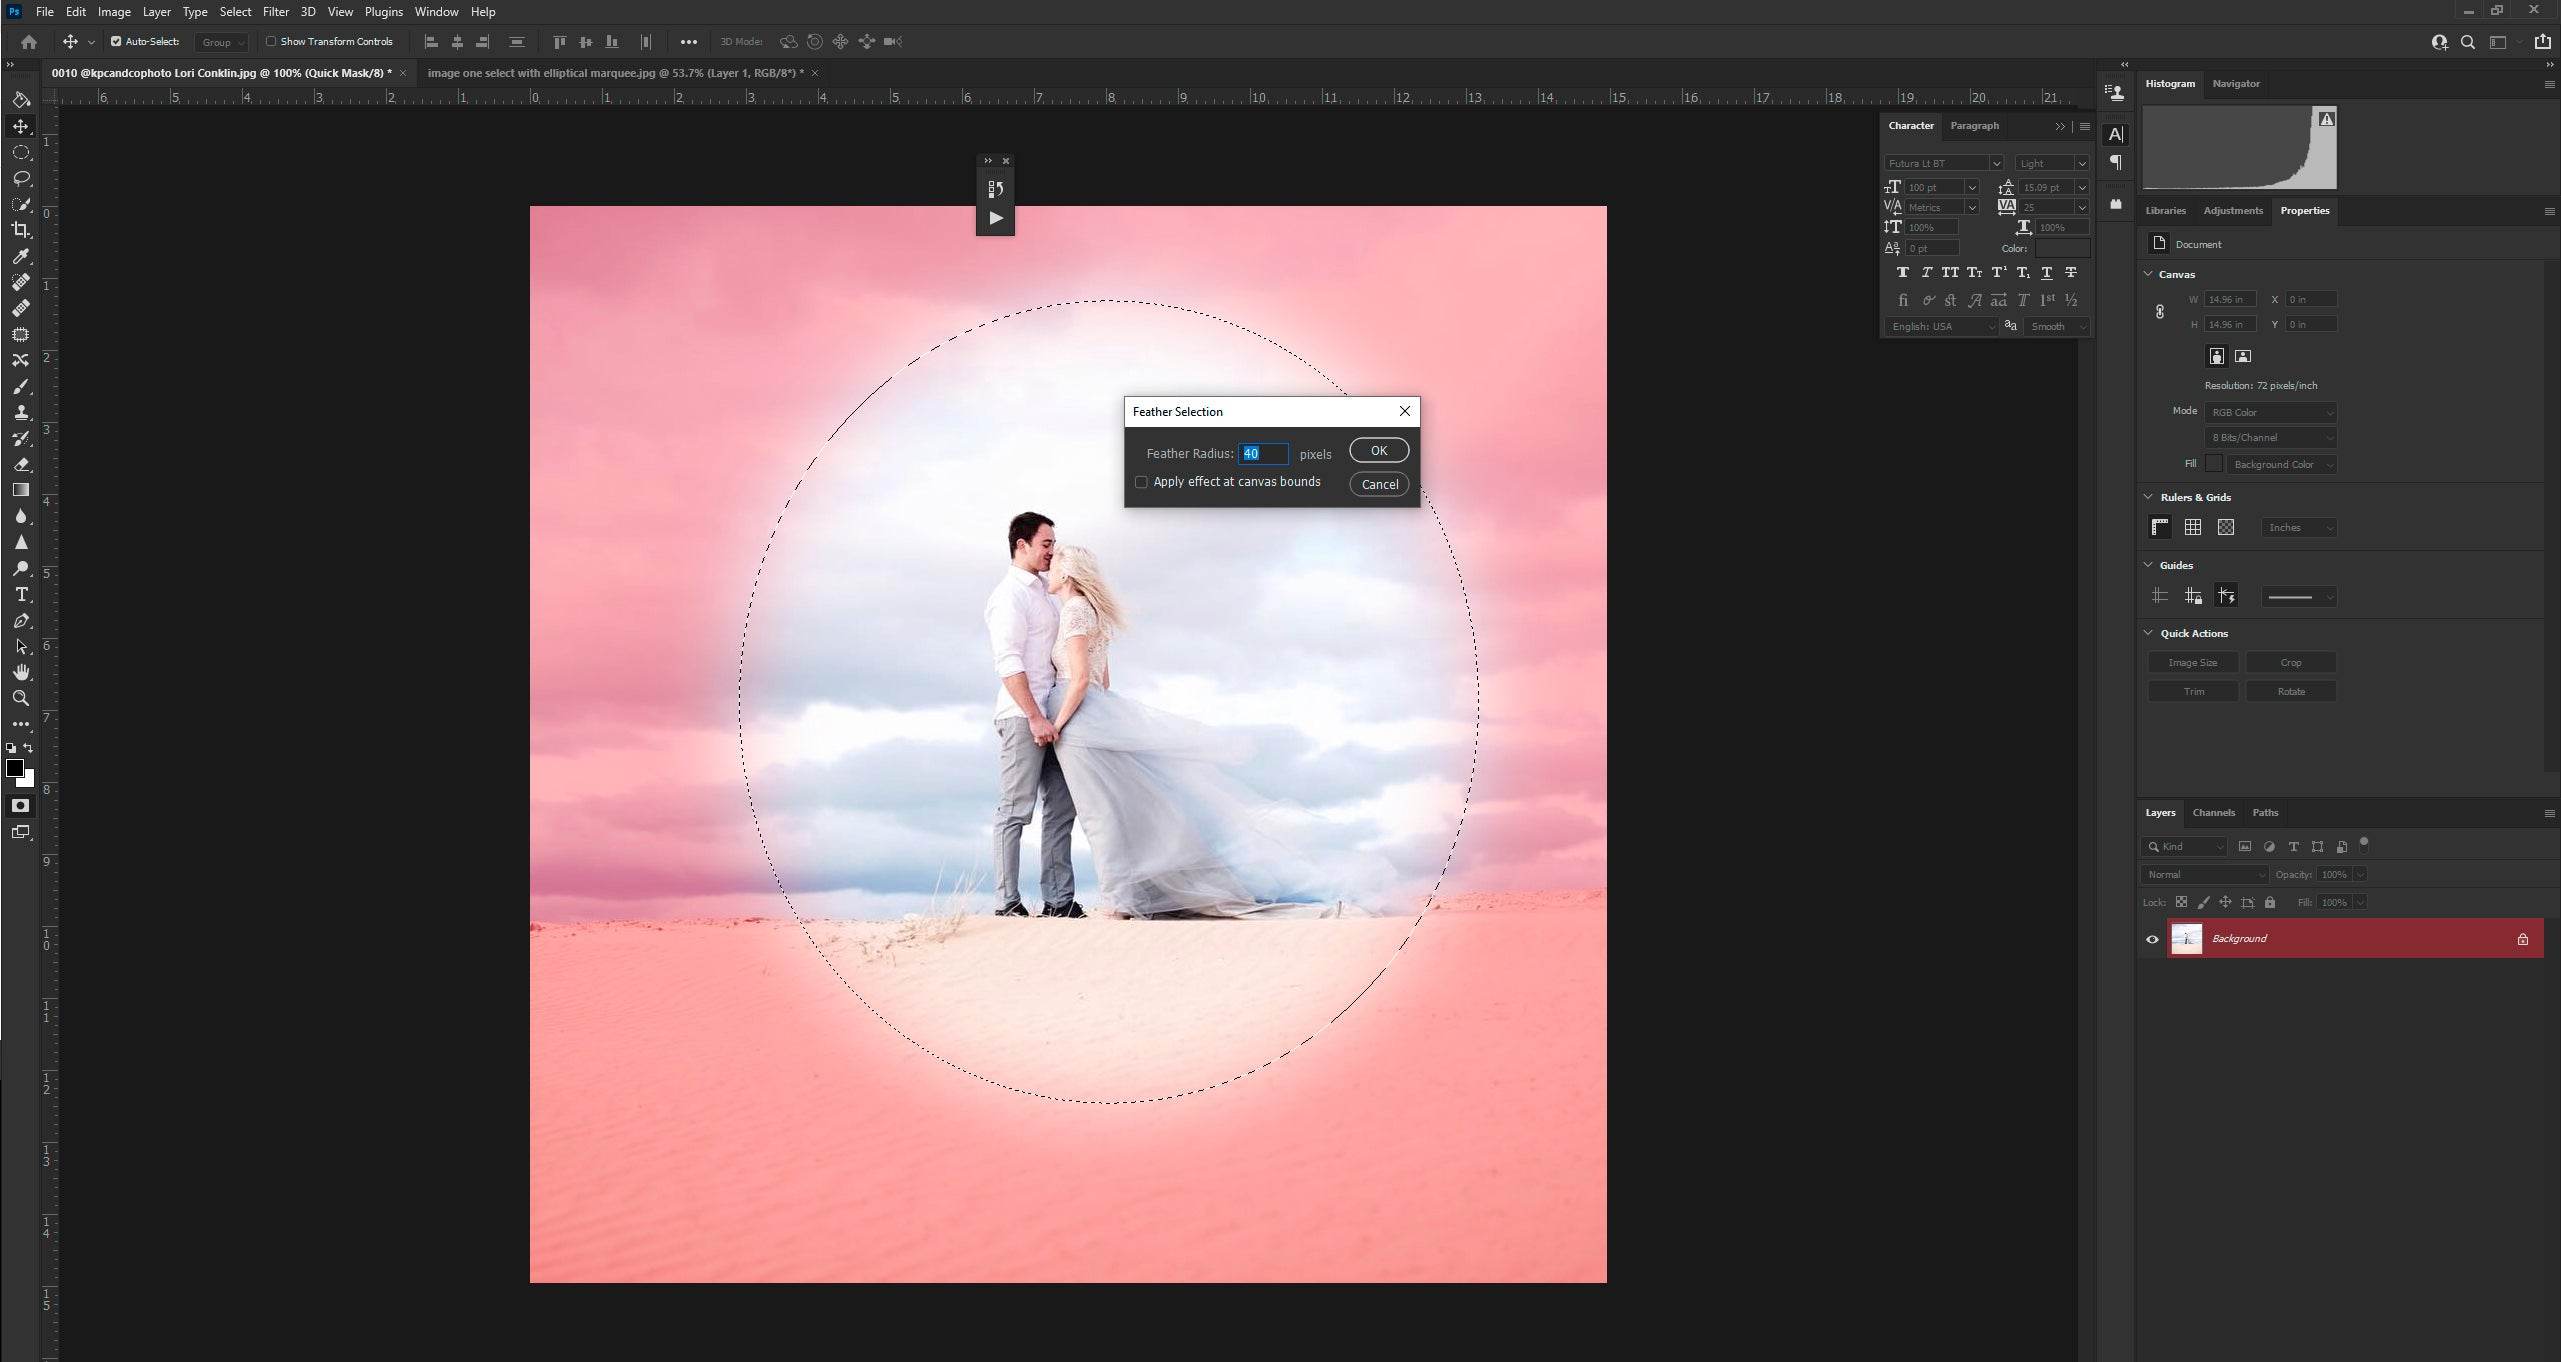 Feathering the edges in Photoshop